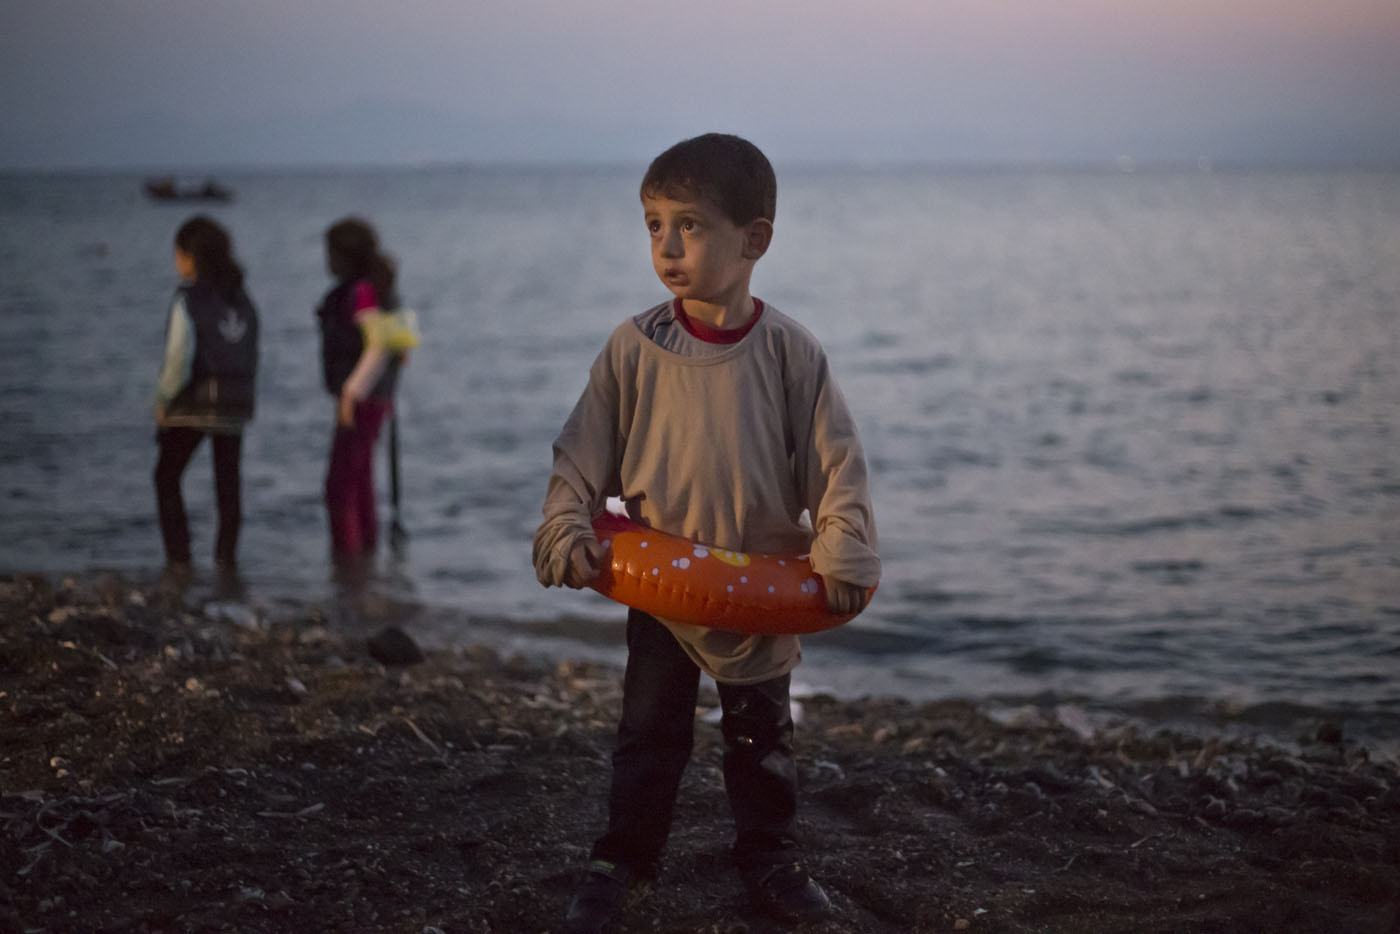 A Syrian migrant boy still wearing a swimming ring stands on the beach upon his arrival with other migrants by a dinghy at the southeastern Greek island of Kos, Greece, early Thursday, Aug. 20, 2015. Greece this year has been overwhelmed by record numbers of migrants arriving on its eastern Aegean islands, with more than 160,000 landing so far.(AP Photo/Alexander Zemlianichenko) ORG XMIT: XAZ102